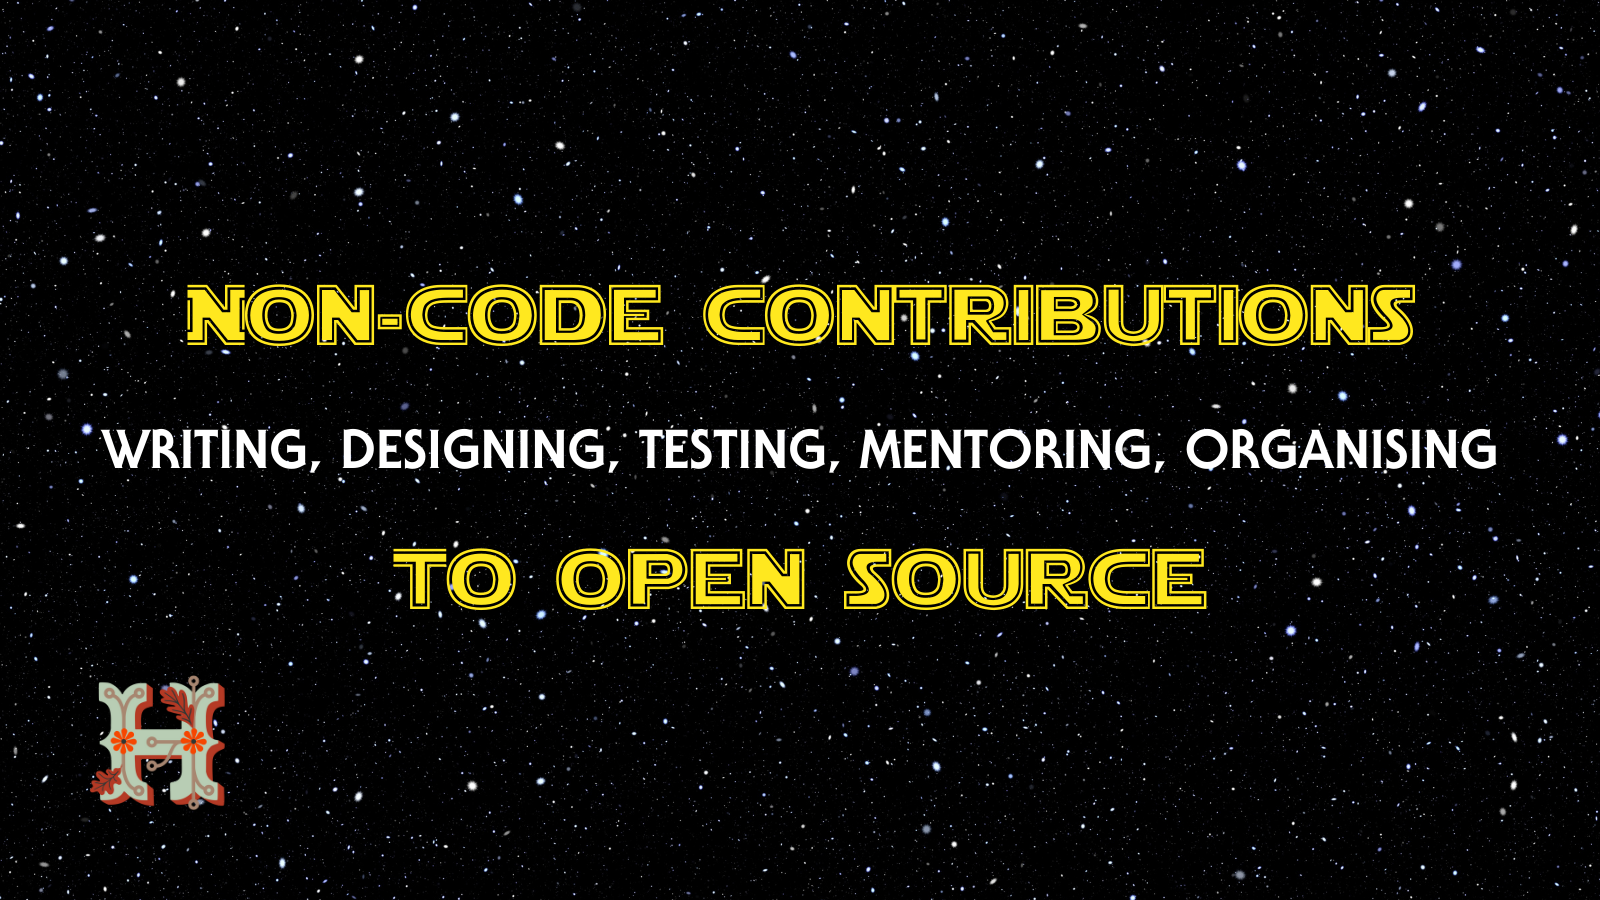 Banner showing non-code contributions to open-source.